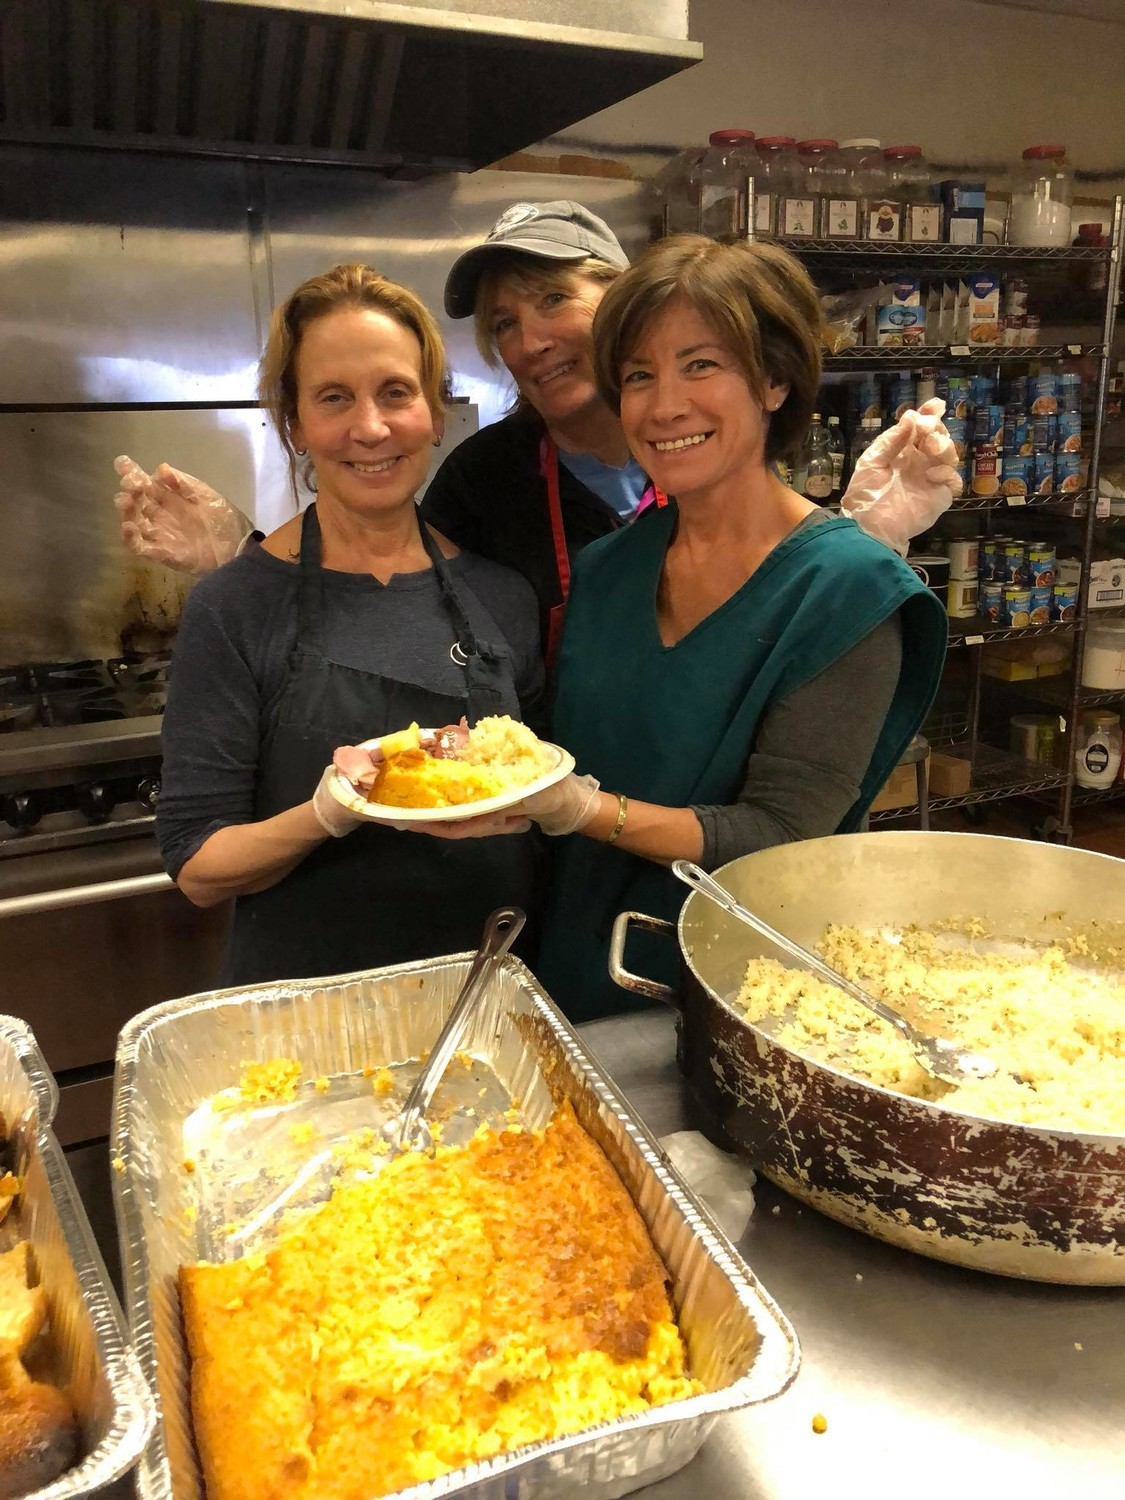 Volunteers Susan Kraetz Deutsch, left, Eileen Doherty Heneghan and Linda Bono MacDonald served ham, corn soufflé and rice to guests at the Long Beach Soup Kitchen on Feb. 9.